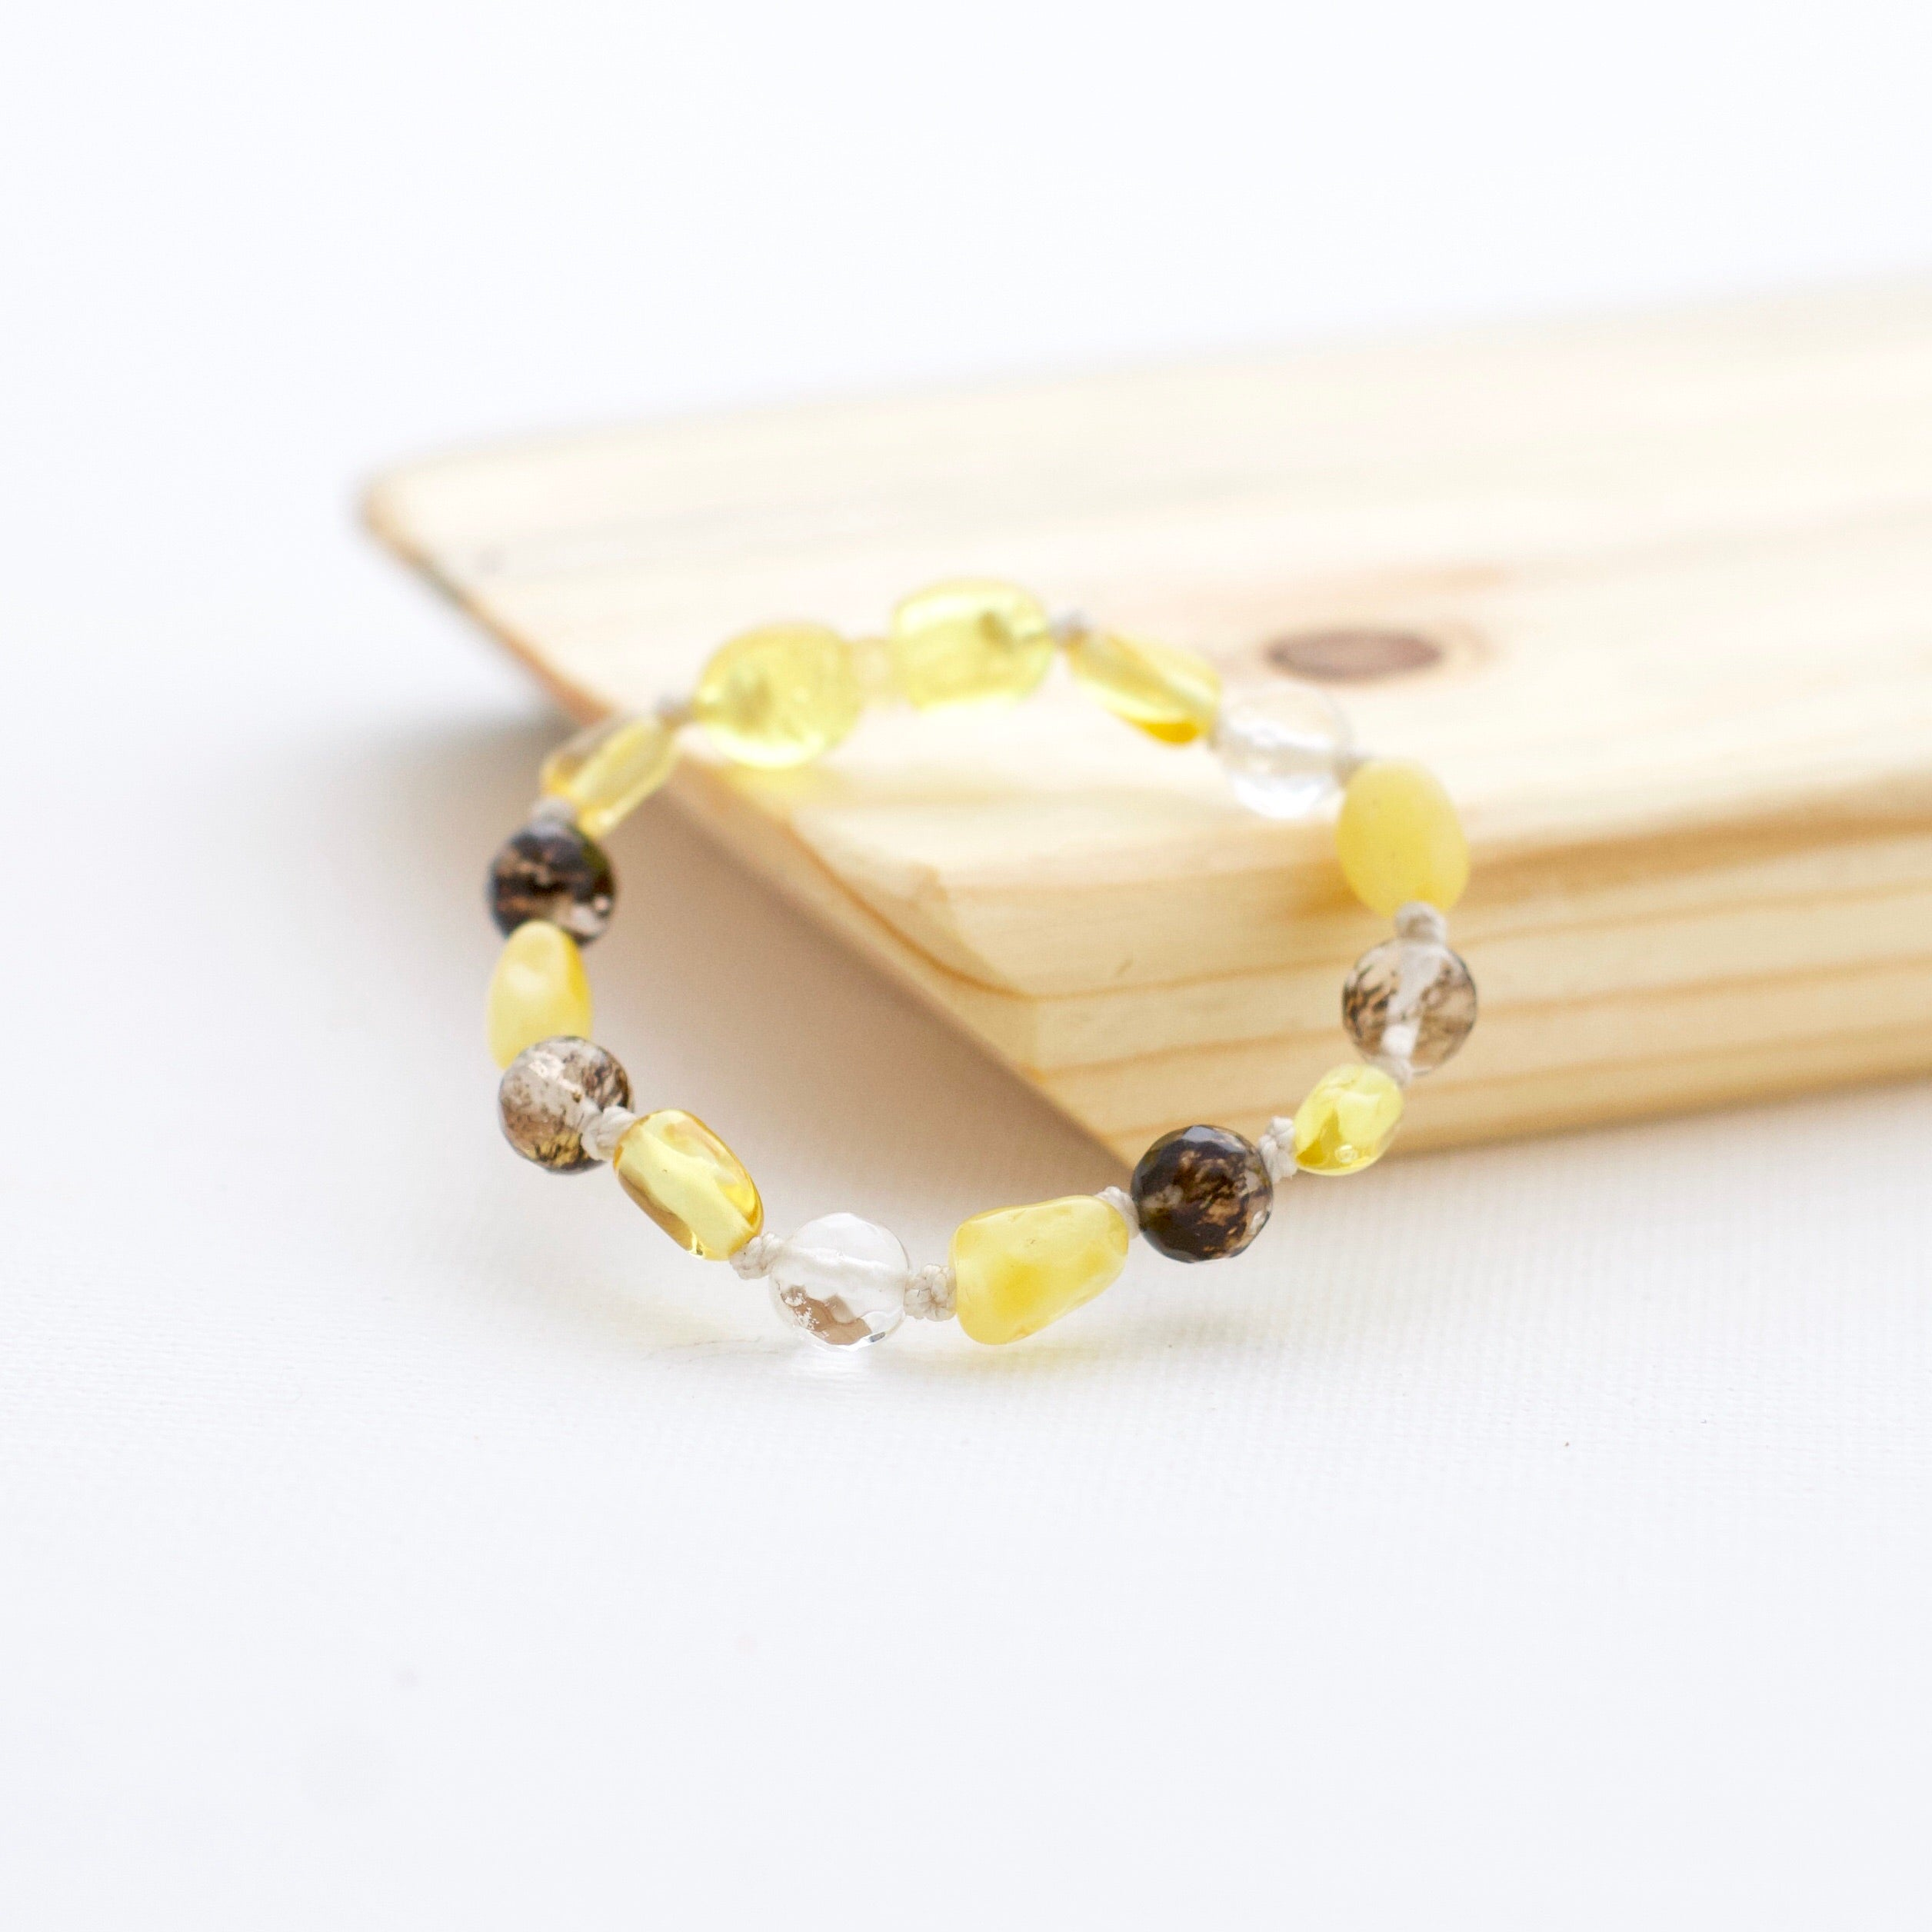 Baltic Amber Teething Bracelet | Lemon Amber + Butter Amber + Black Cherry Quartz